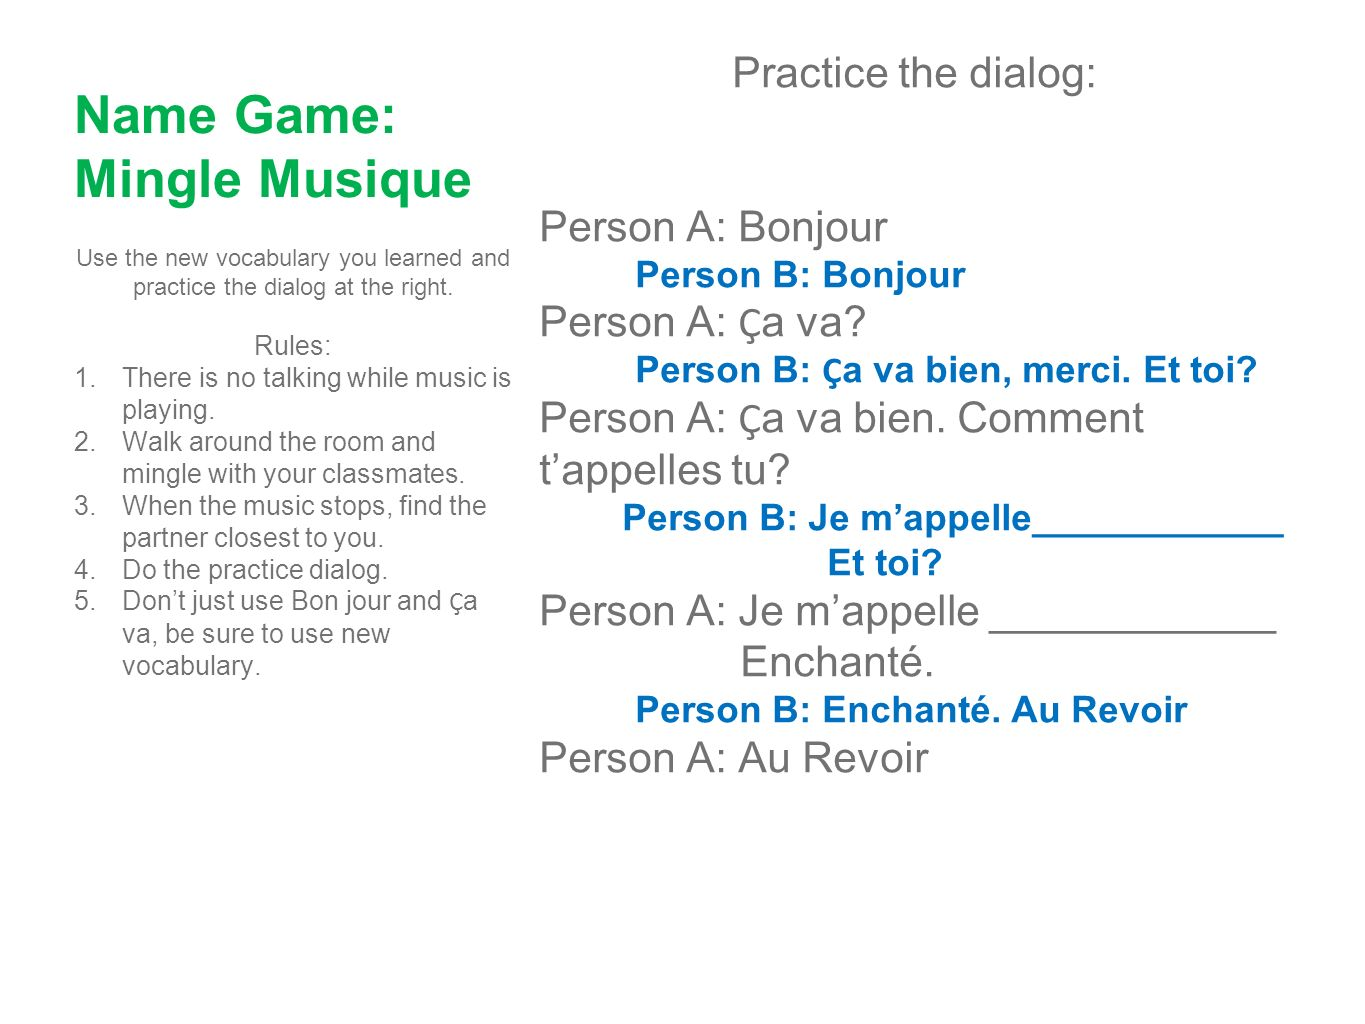 Name Game: Mingle Musique